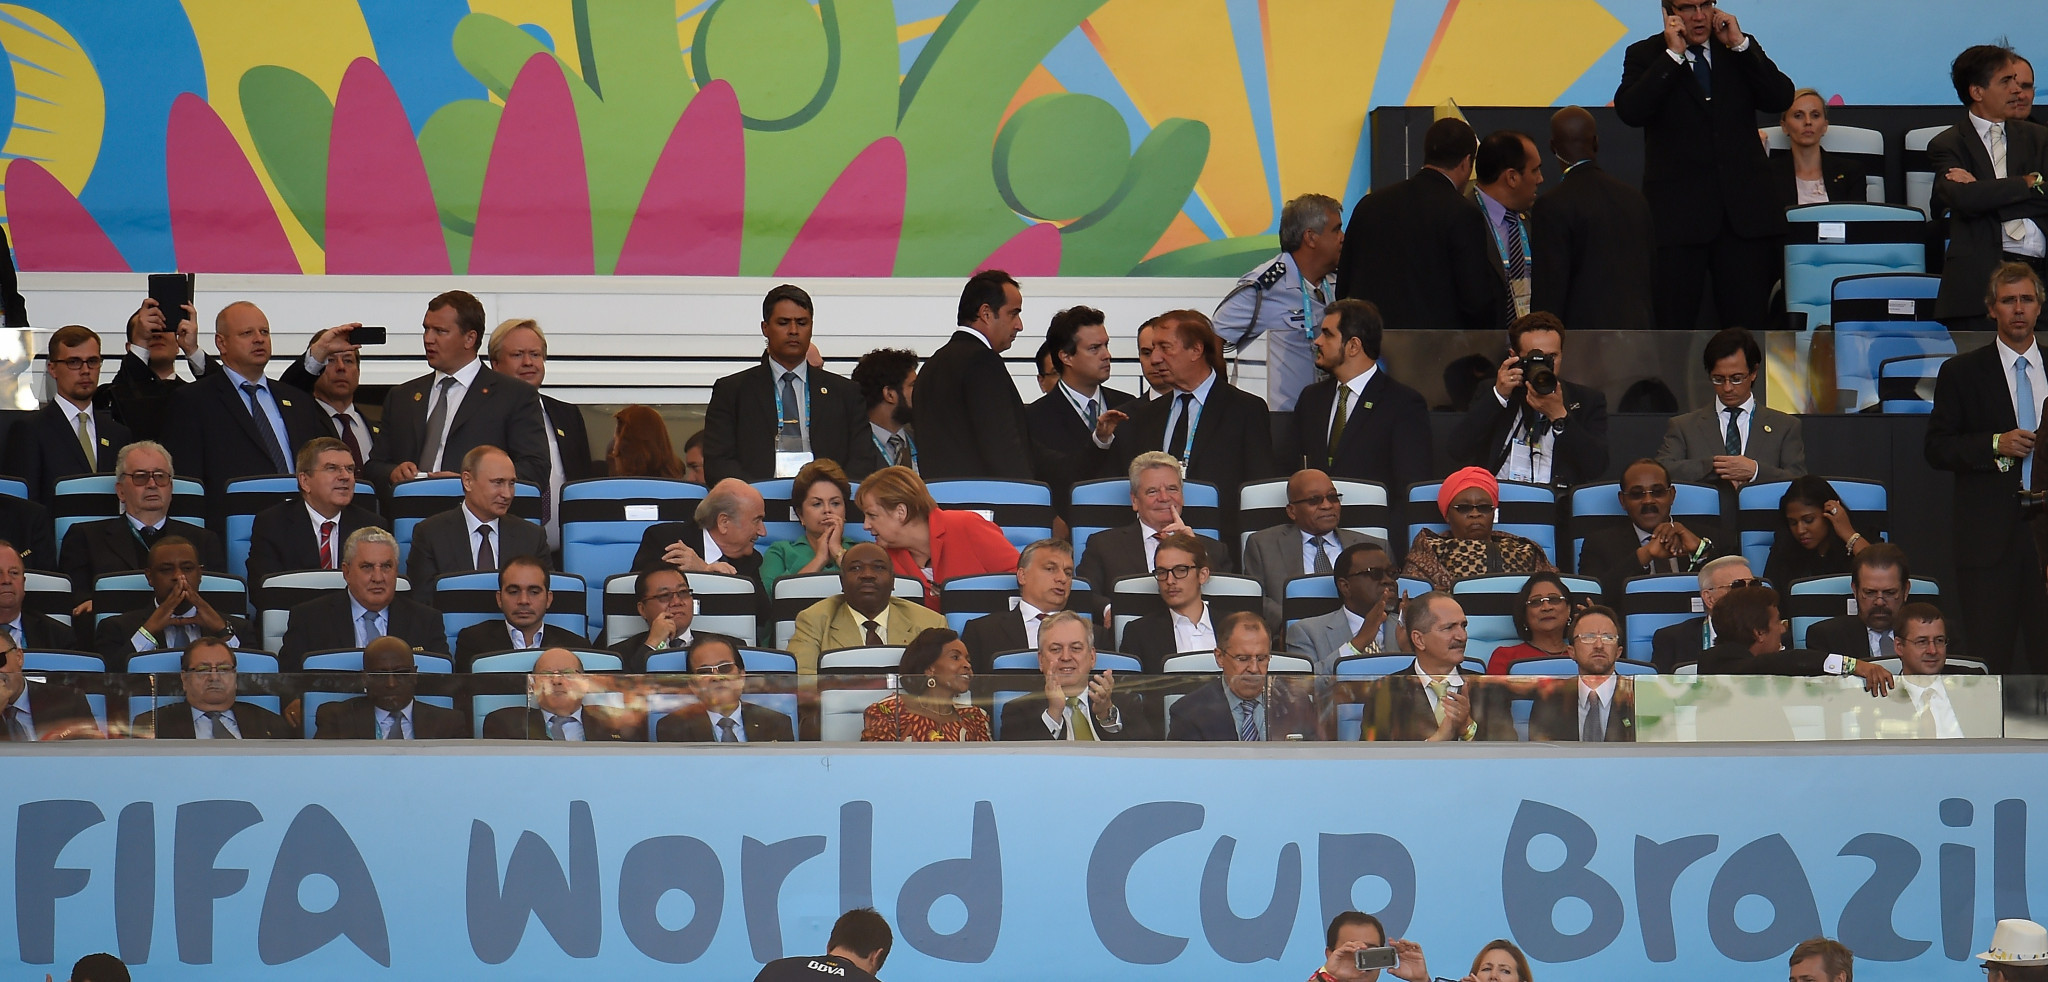 Thomas Bach, third row from top, second left, sat next to Vladimir Putin at the 2014 World Cup final in Brazil ©Getty Images